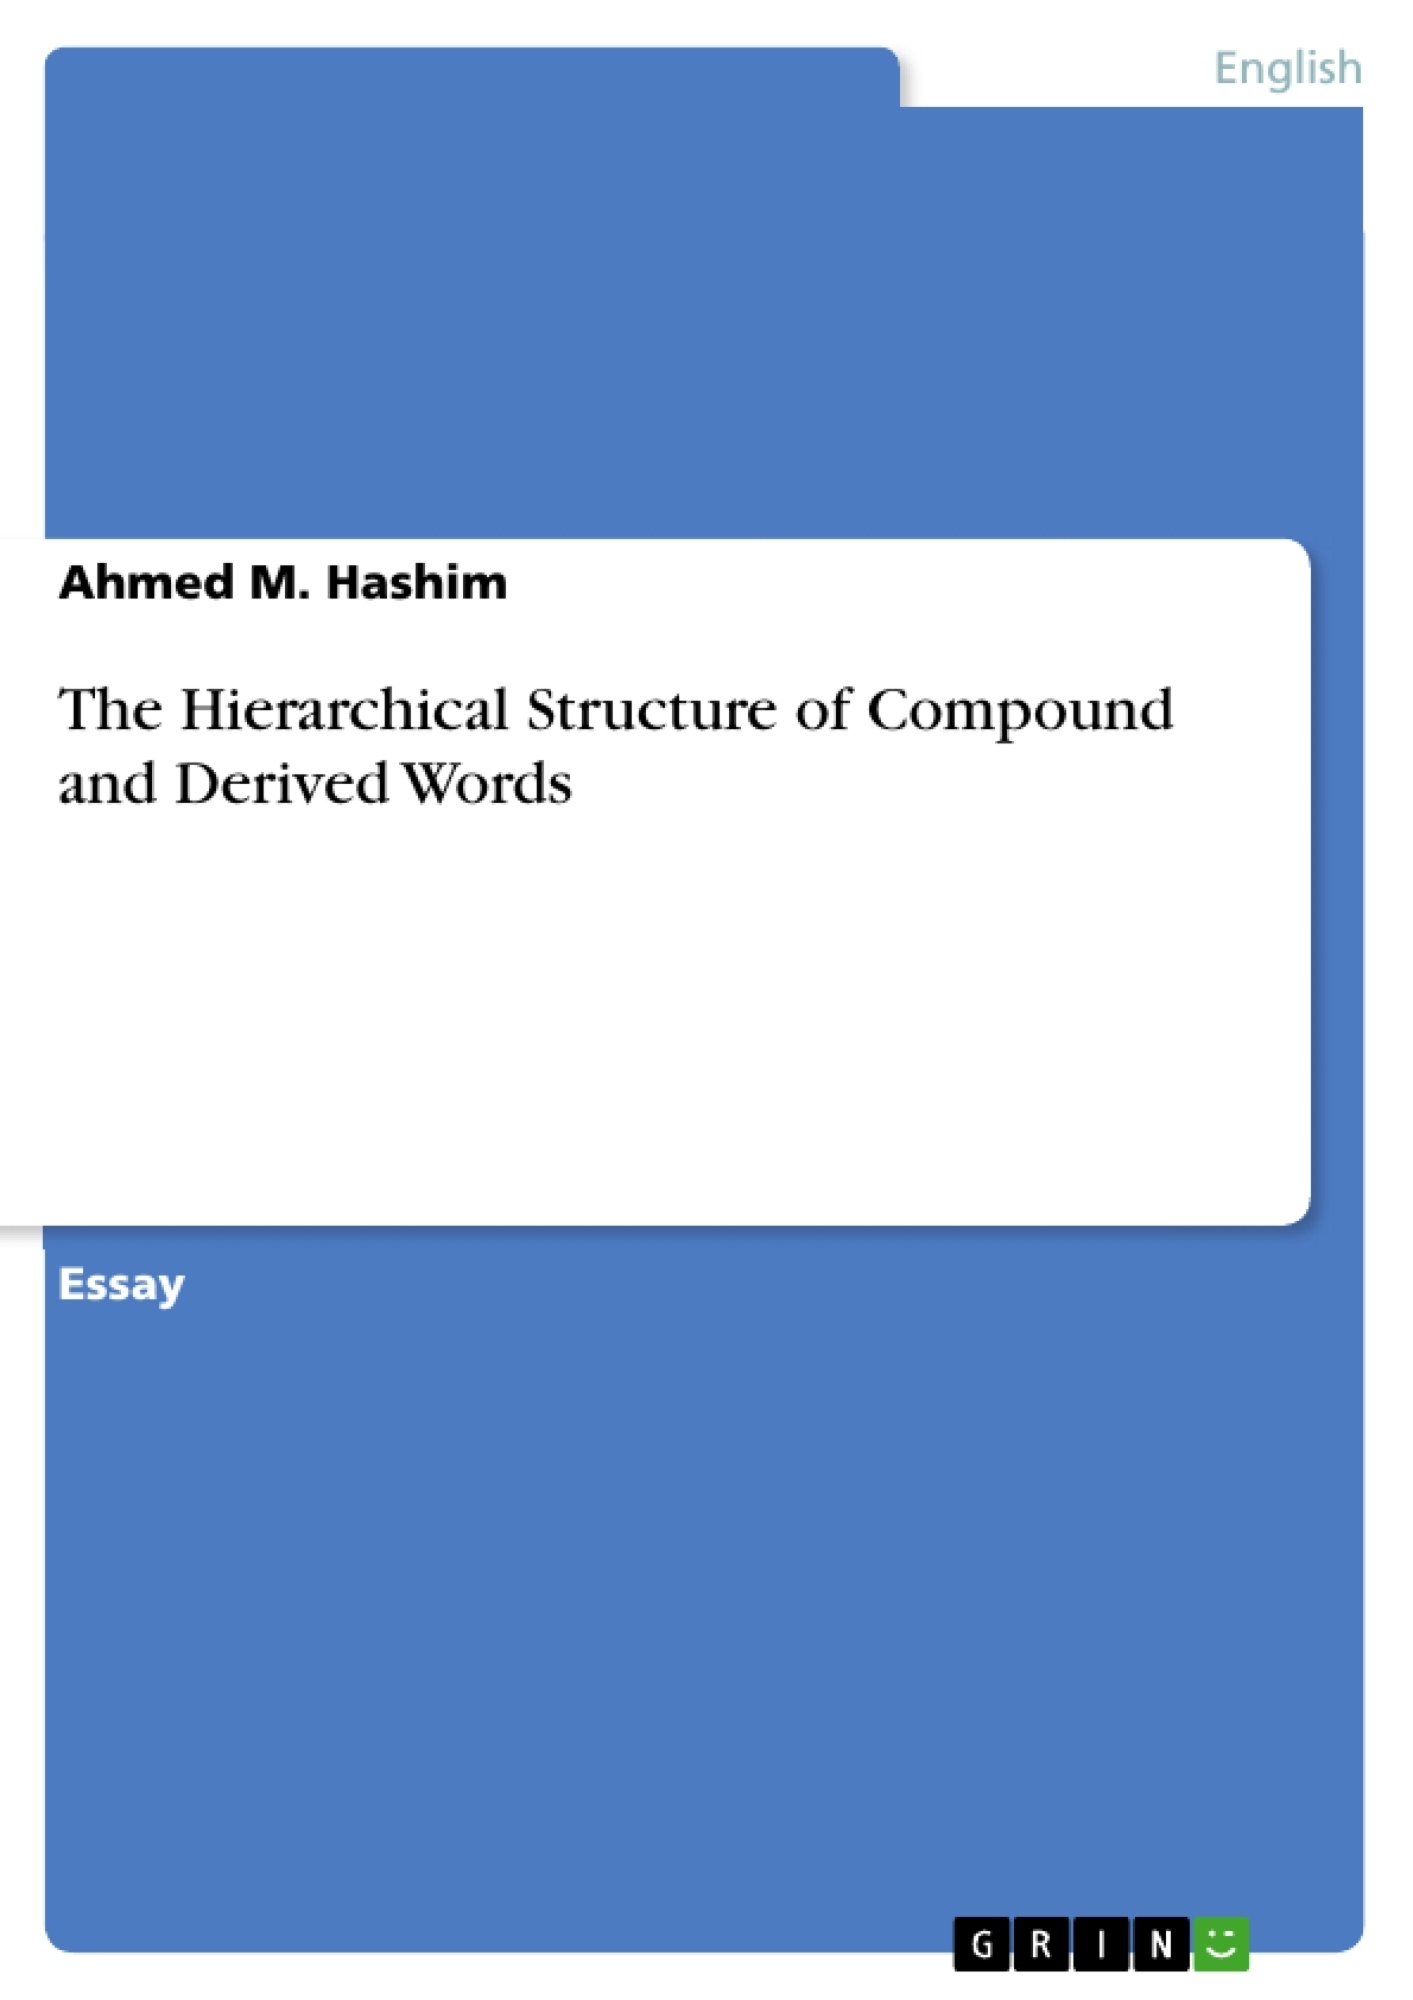 Title: The Hierarchical Structure of Compound and Derived Words